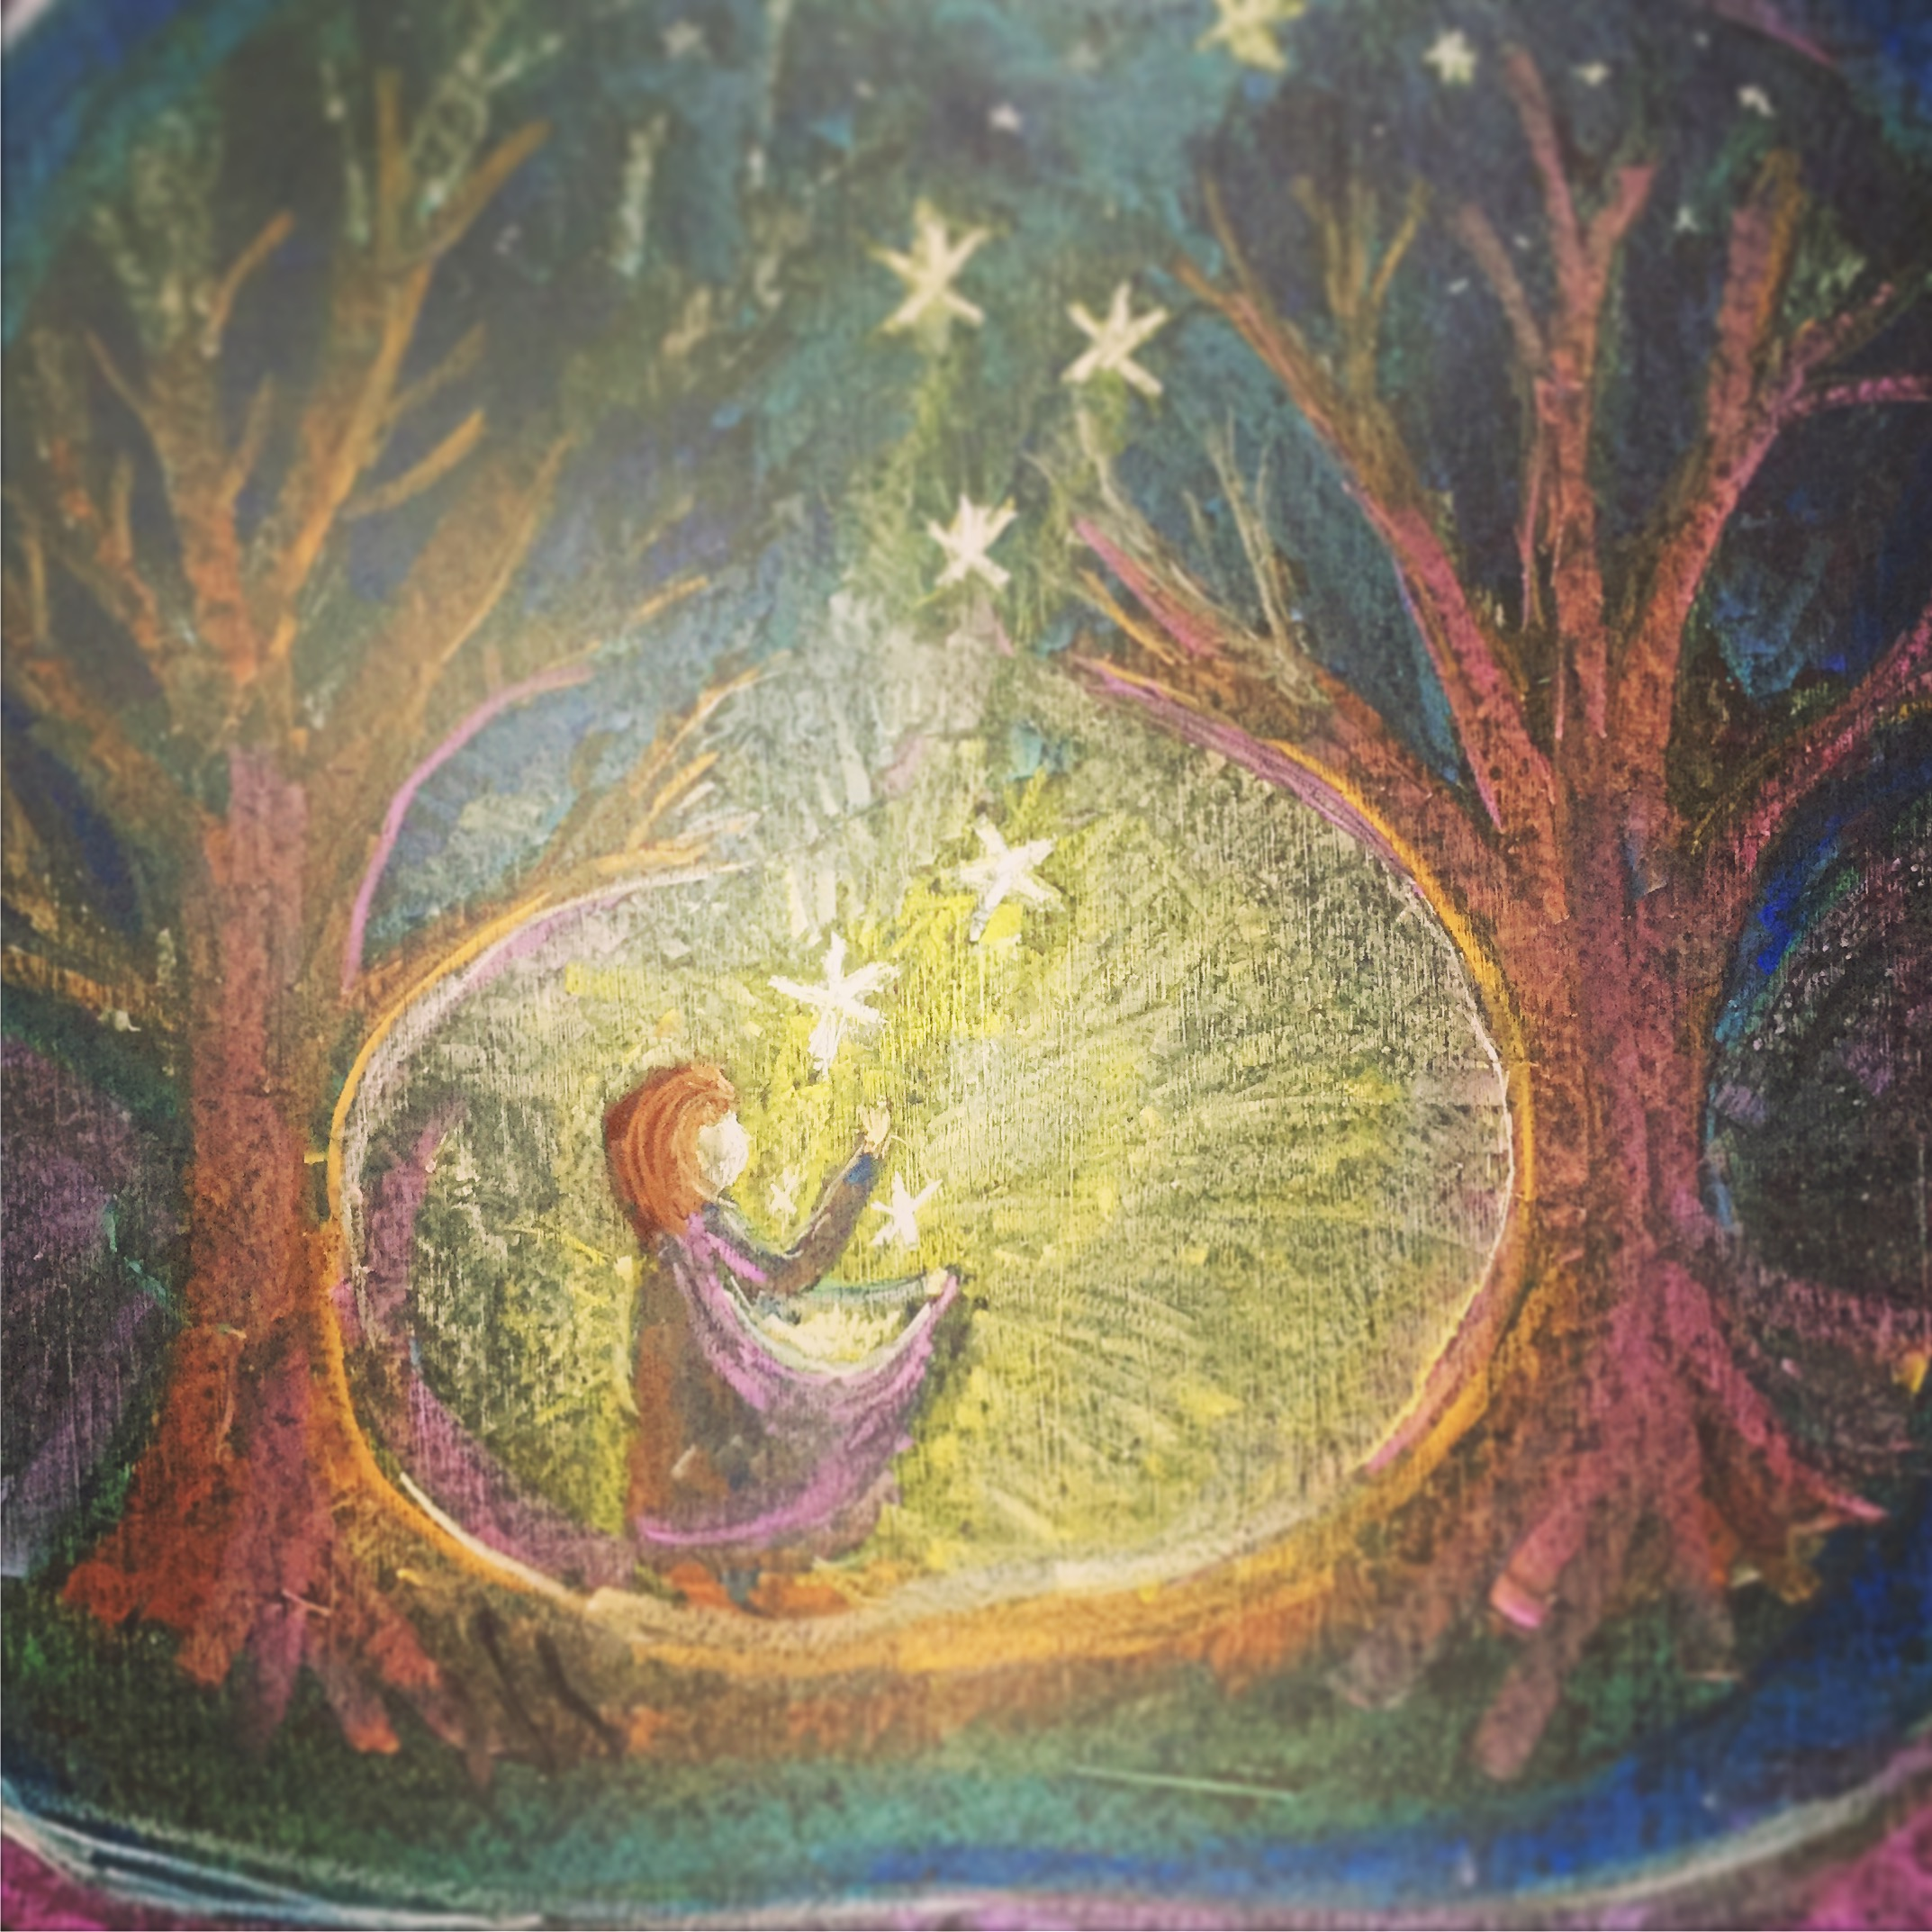 A fairytale chalkboard drawing of The Star Money. Celebrating 100,000 downloads for the April Eight Songs & Stories Podcast at aprileight.com